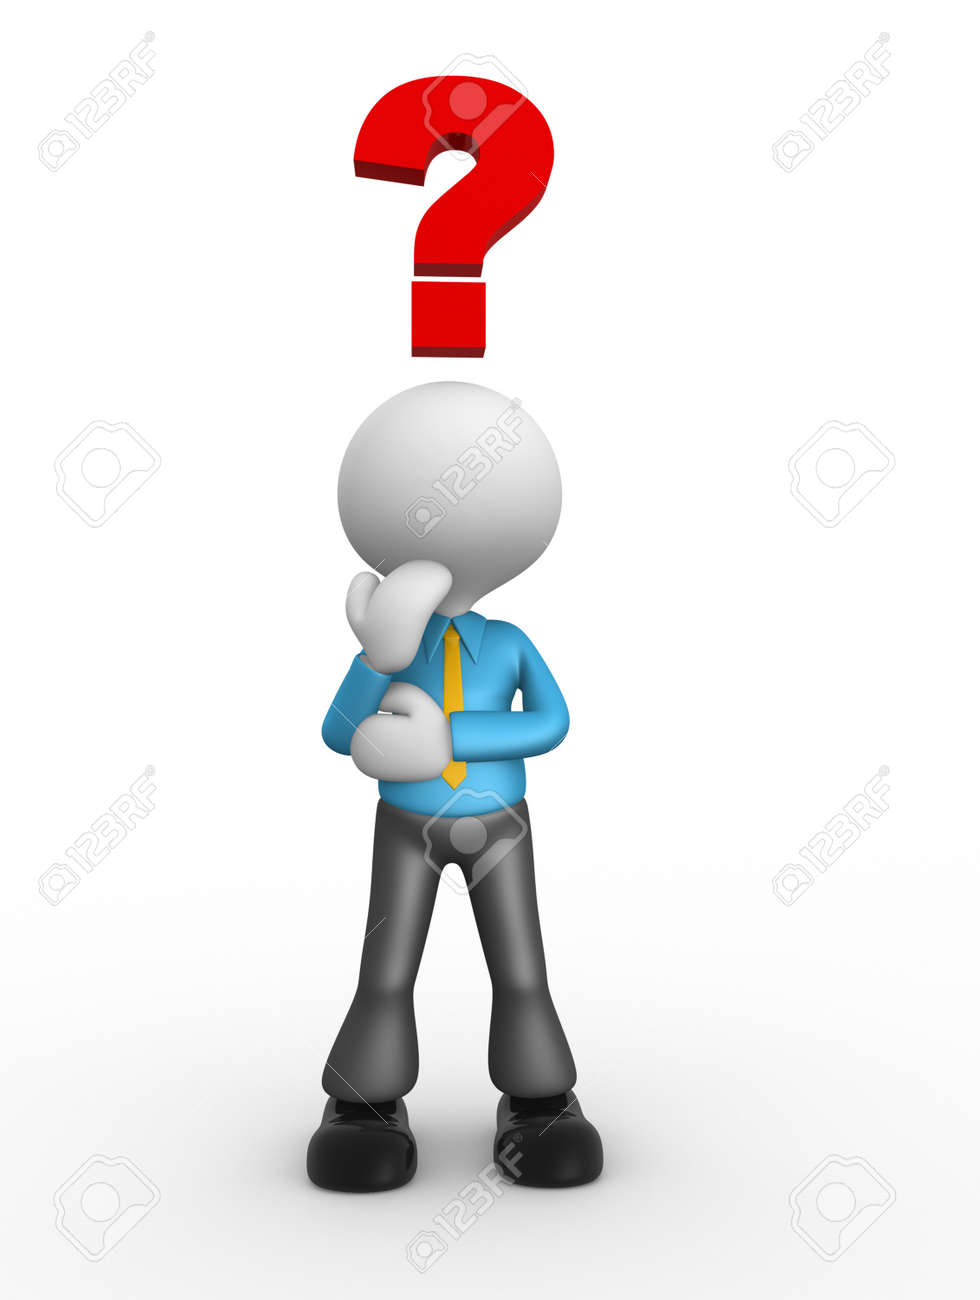 3d people - man, people thinking with red question mark above his head over Stock Photo - 18492124